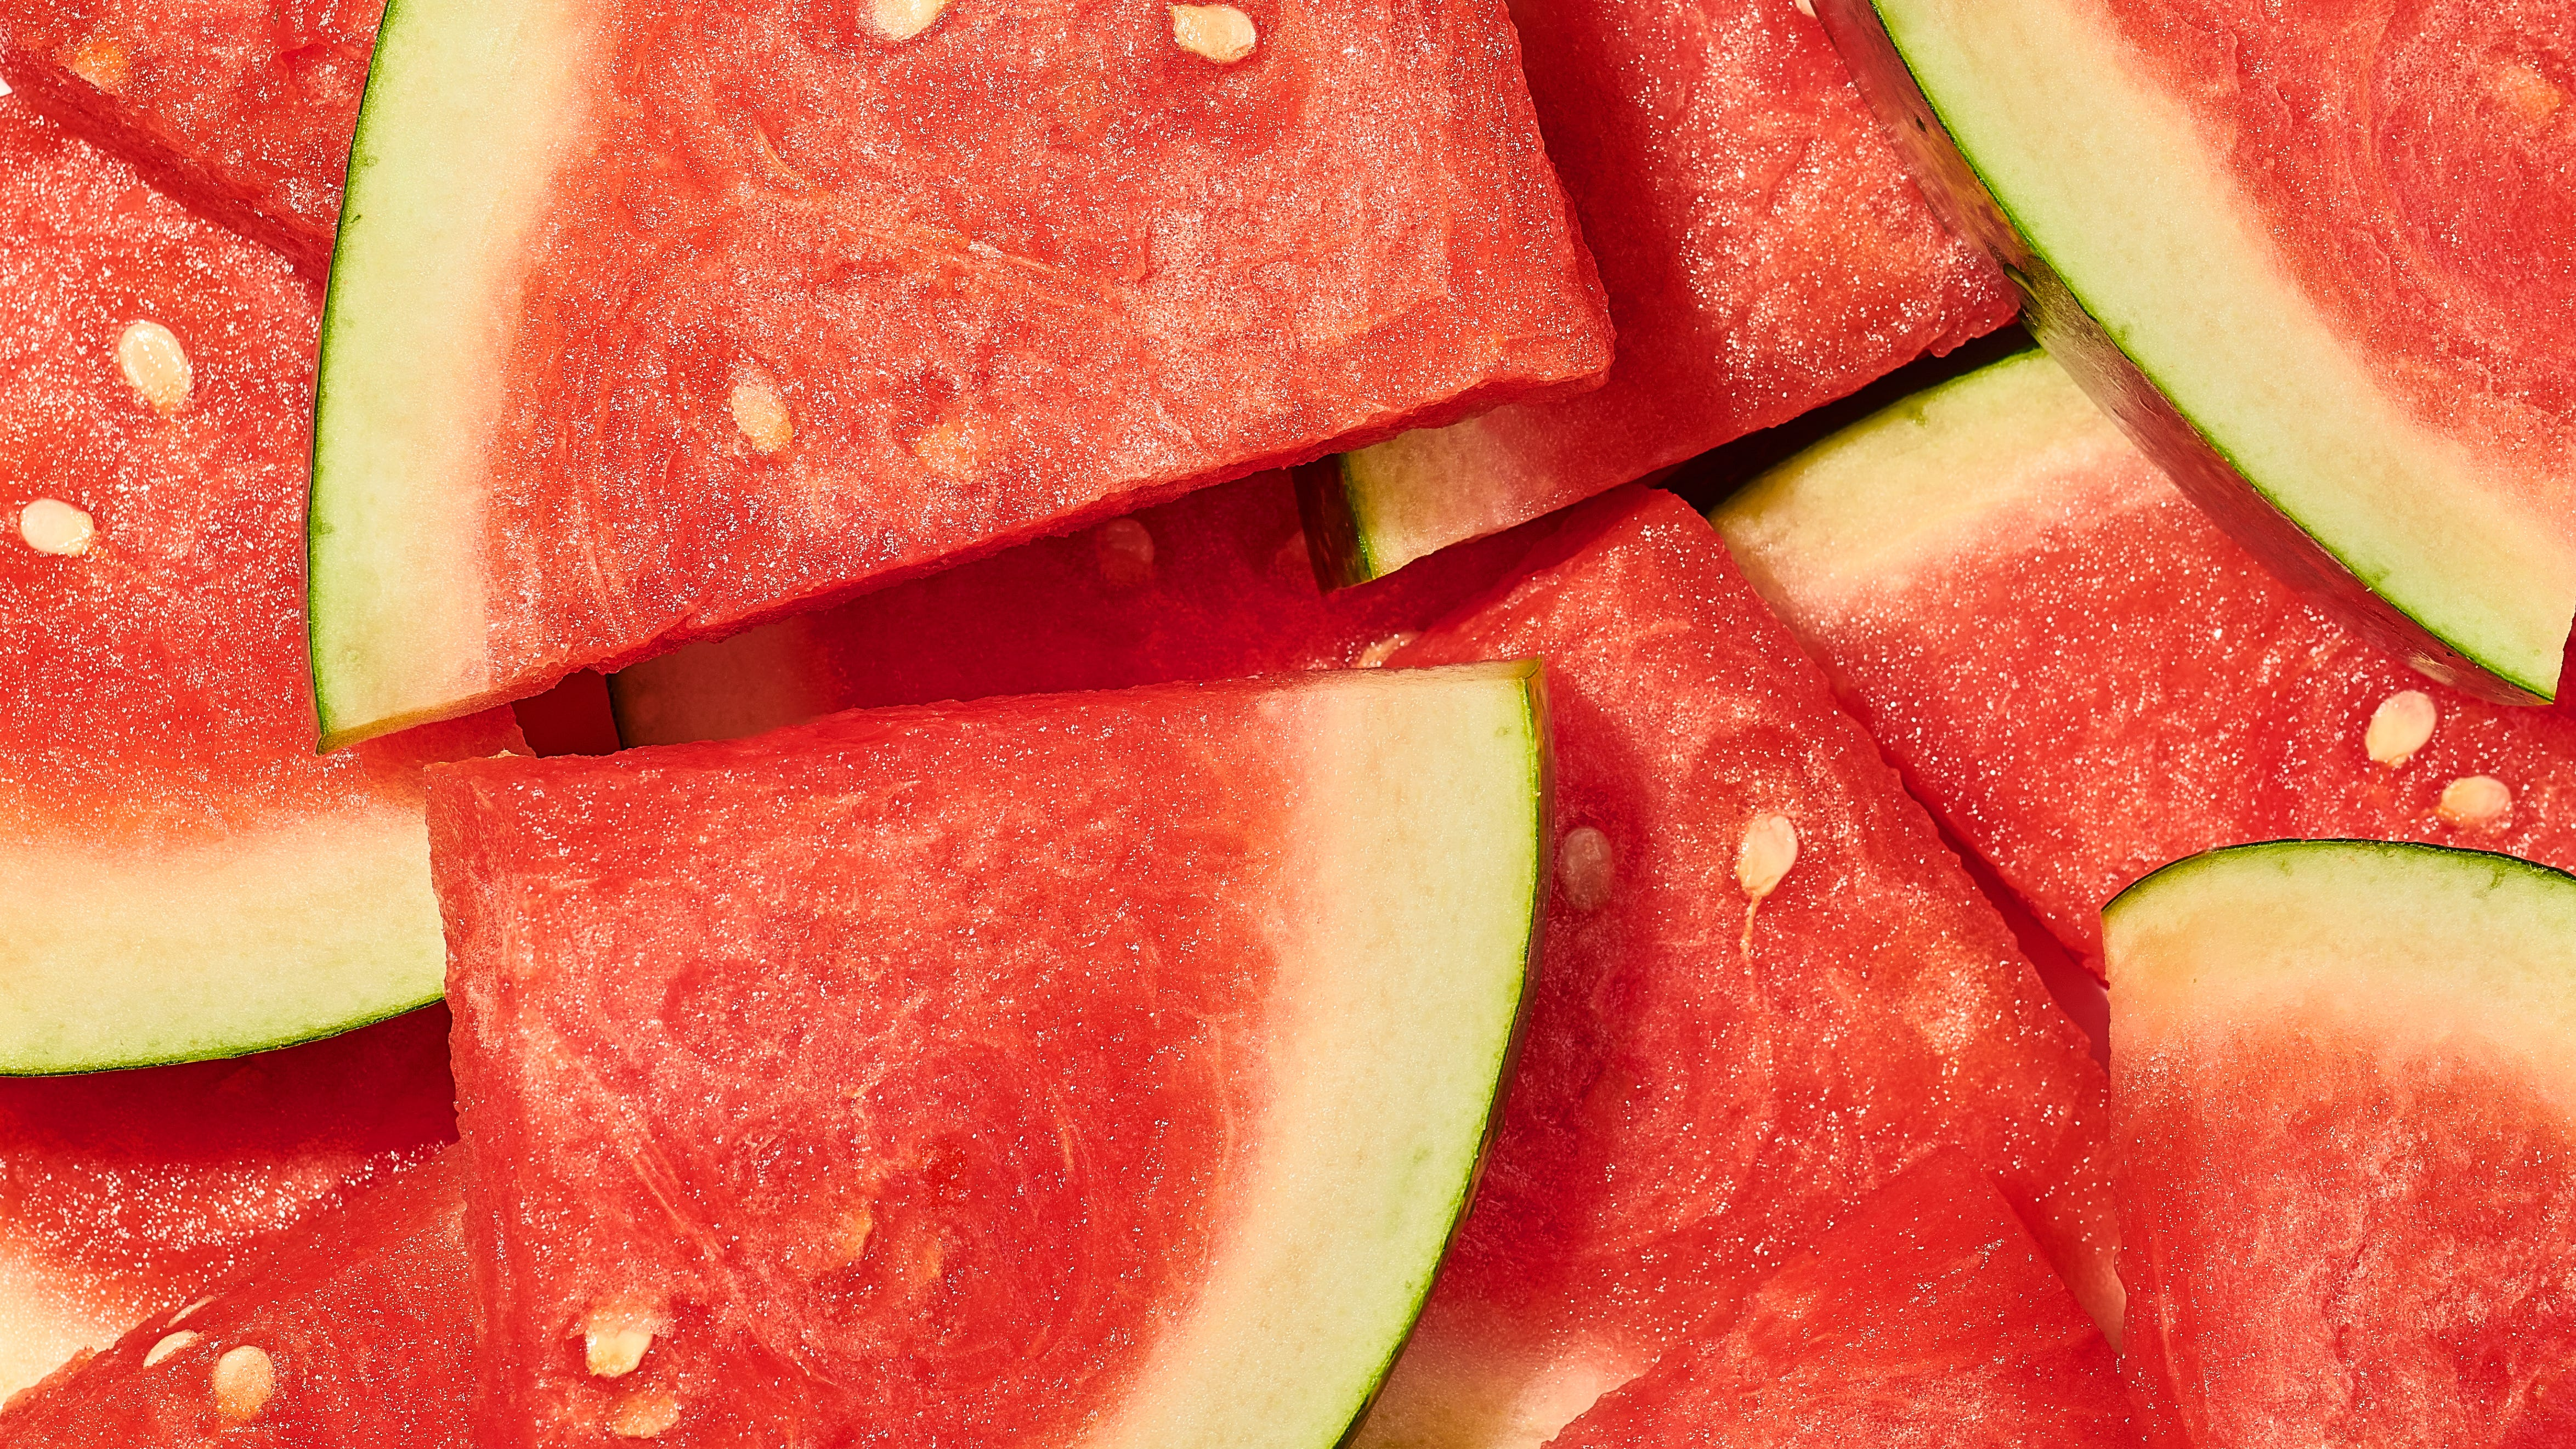 We Ve Been Cutting Watermelon Incorrectly Our Whole Lives